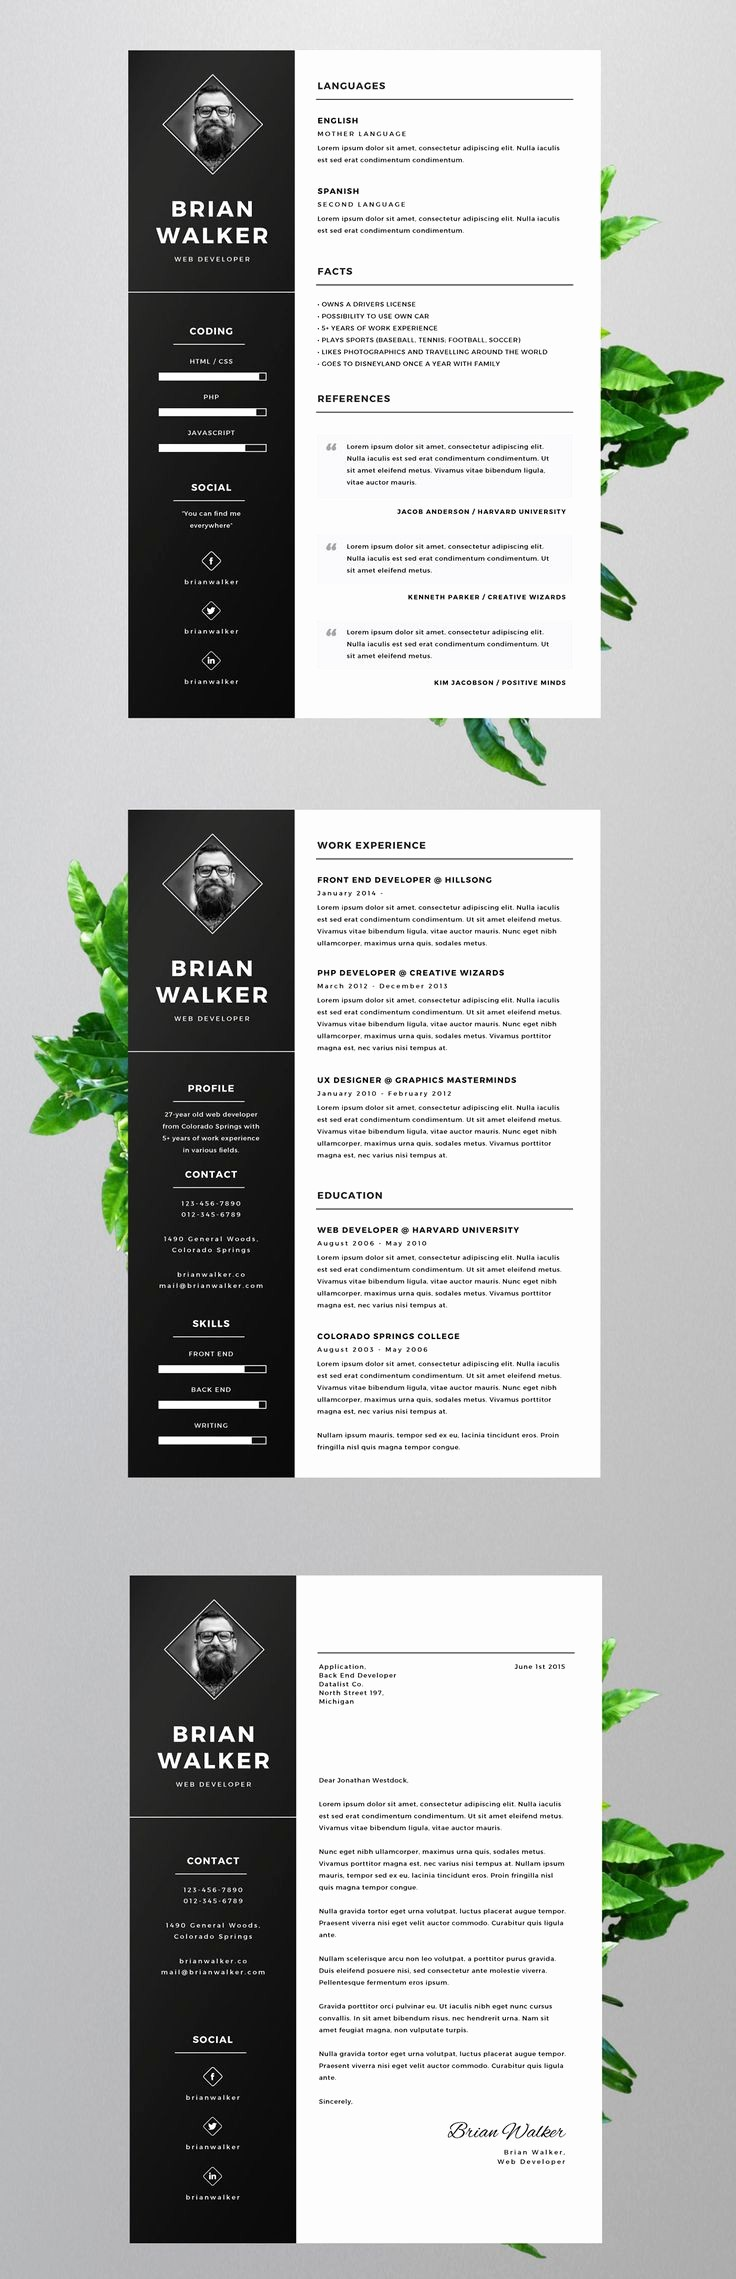 Creative Resume Template Microsoft Word Inspirational Best 25 Free Creative Resume Templates Ideas On Pinterest